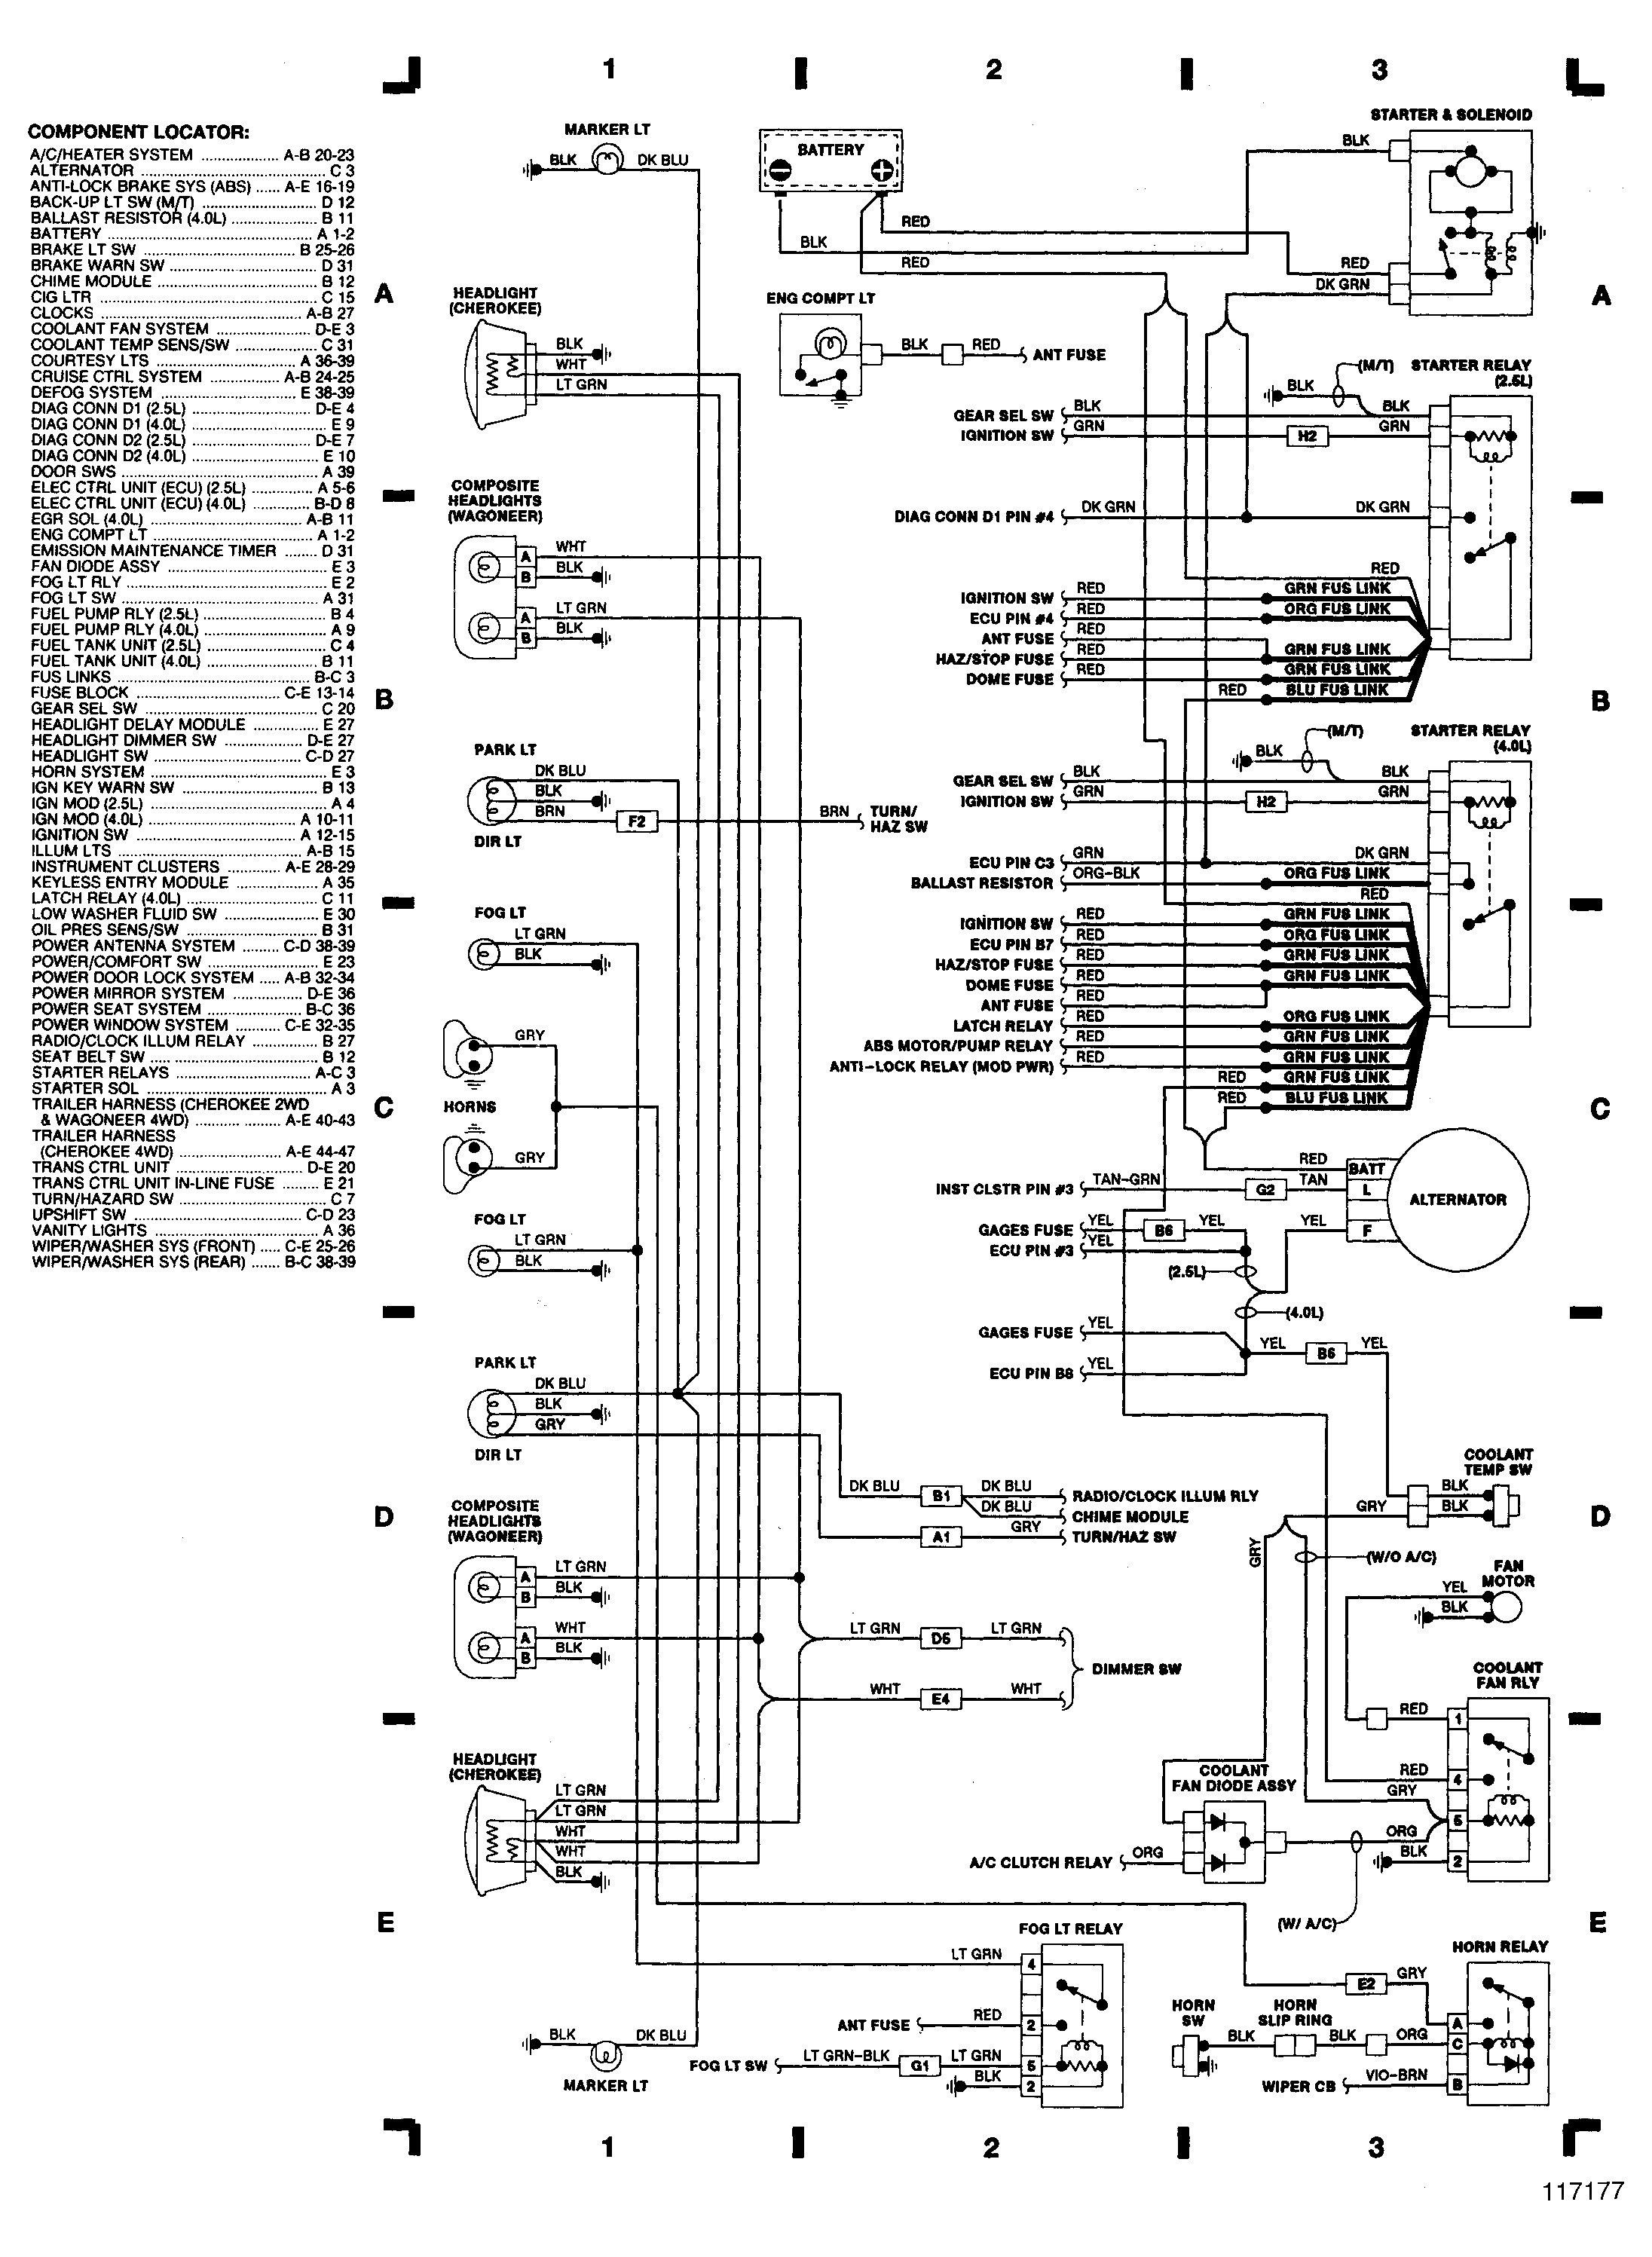 fresh wiring diagram yamaha aerox diagrams digramssample yamaha grizzly wiring diagram yamaha 600 2011 wiring diagram #10